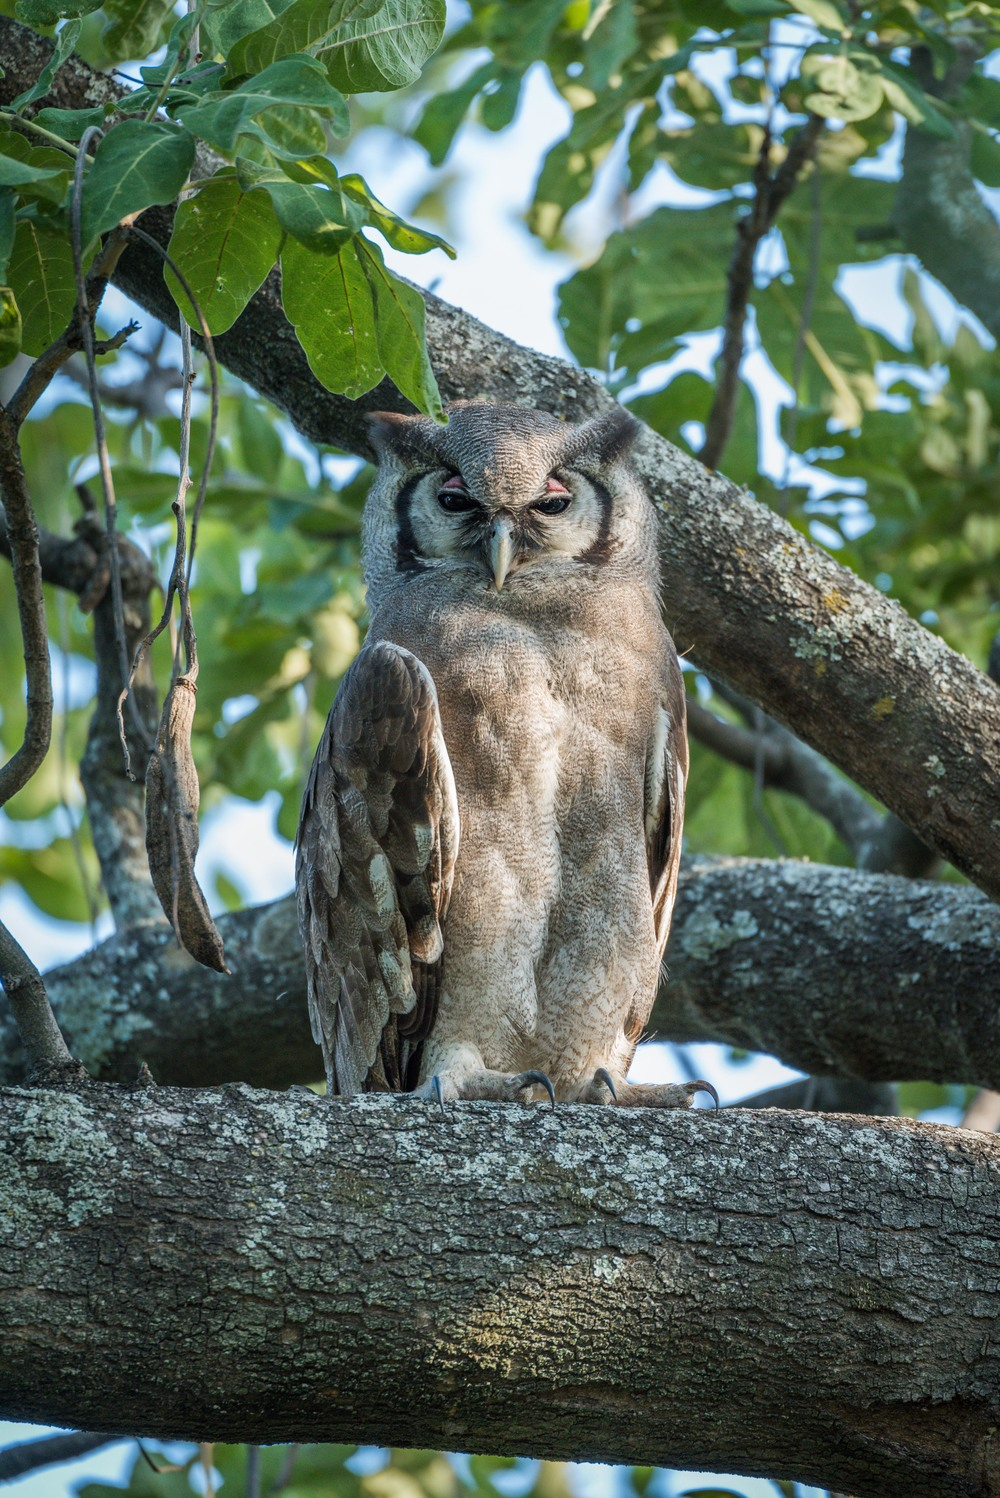 A spotted eagle owl looking very wise